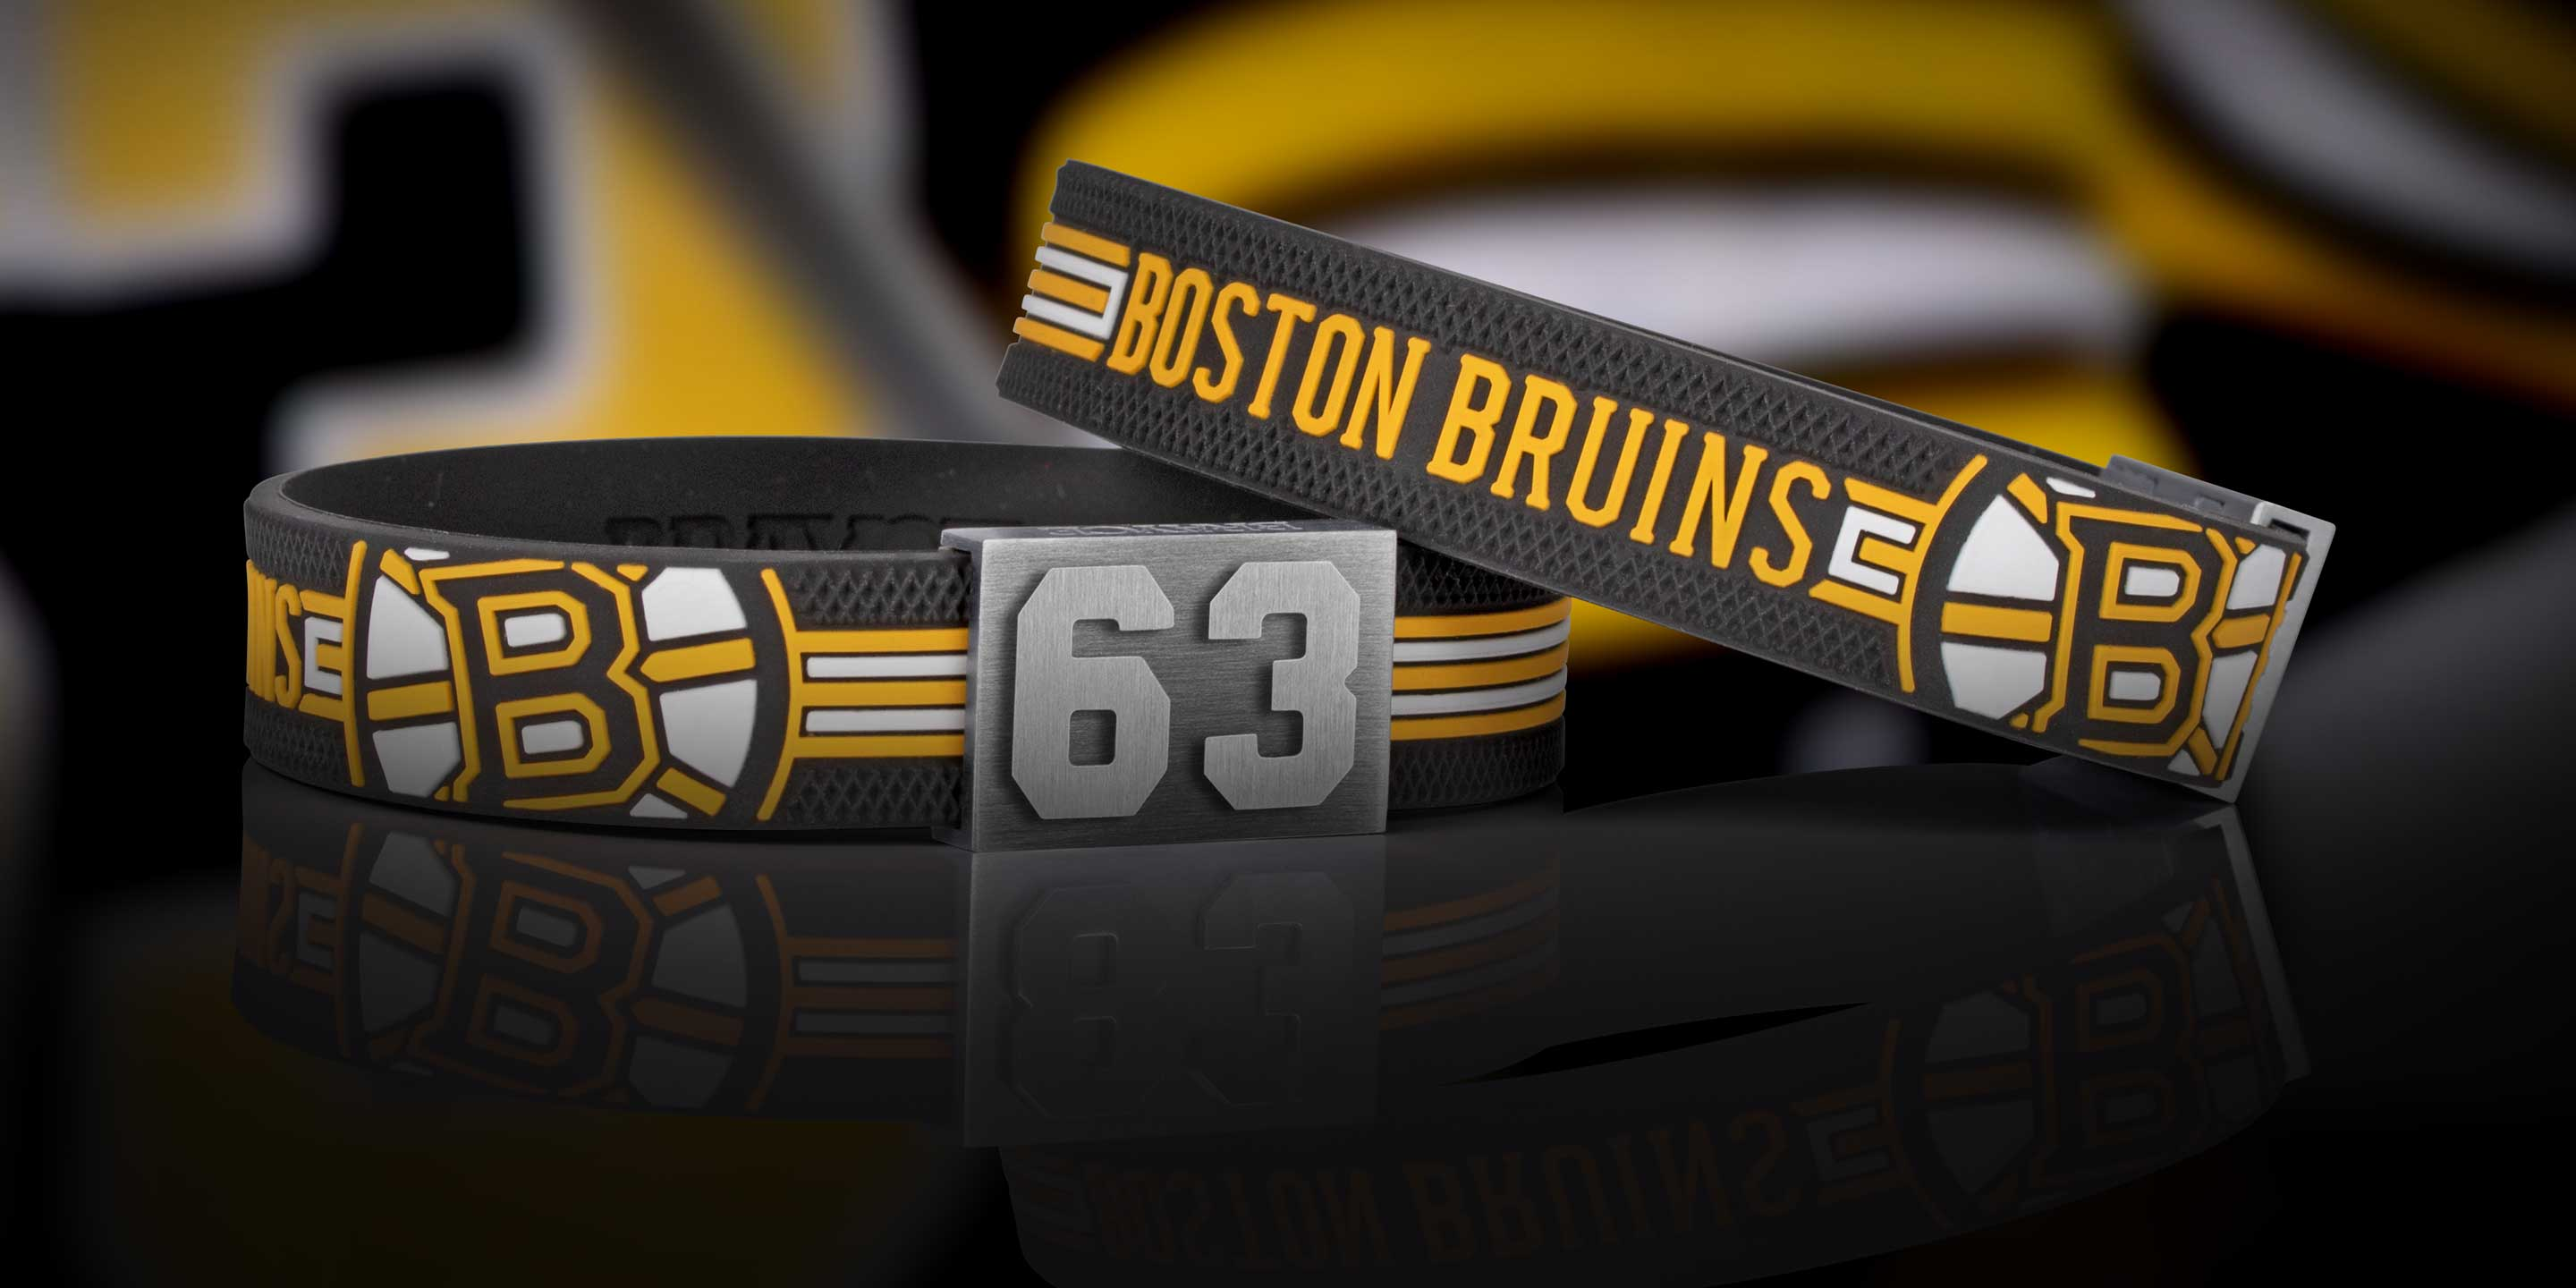 Boston Bruins bracelet with puck haptic